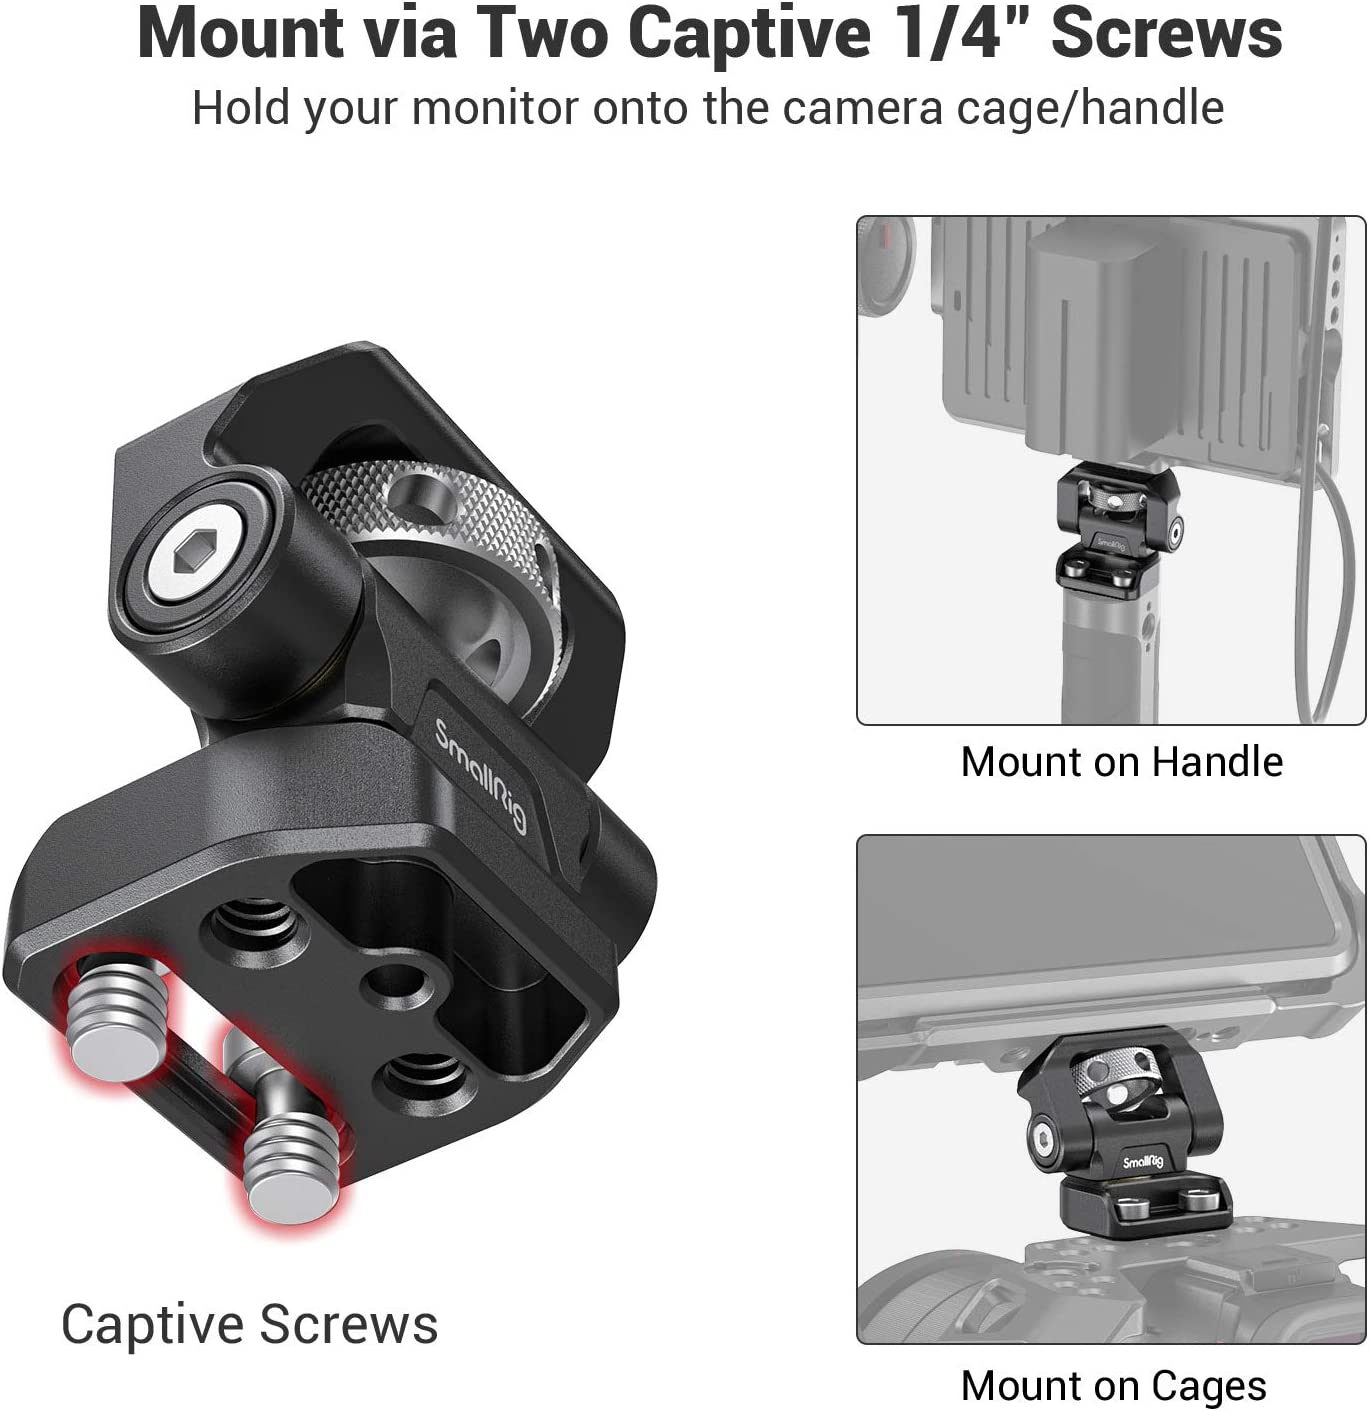 2904 SMALLRIG Field Monitor Mount Monitor Holder Swivel and Tilt Adjustable with Screws Mount for 5 and 7 Monitor